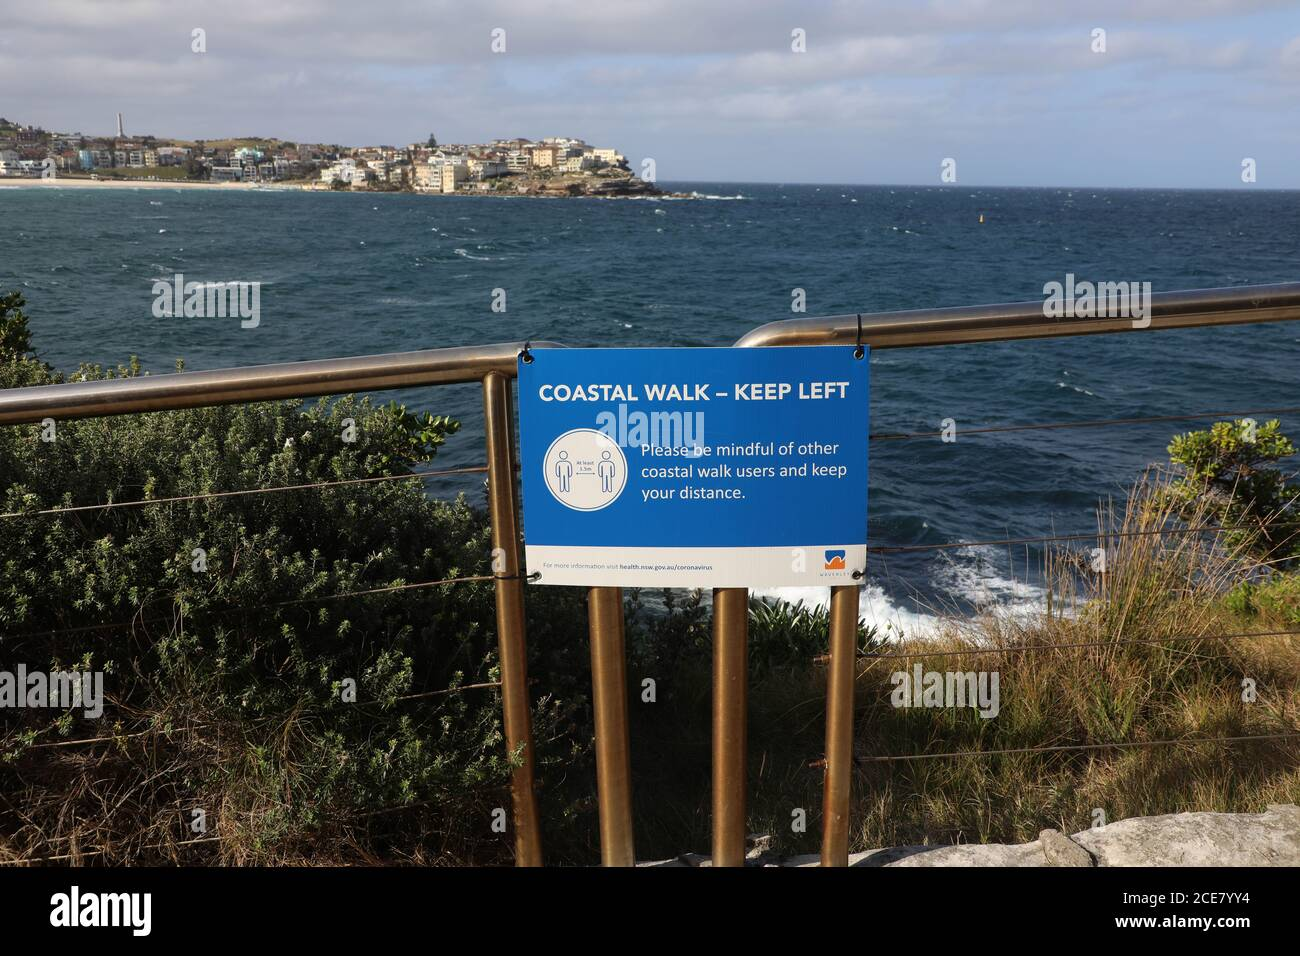 Sydney, Australia. 31st August 2020. Waverley Council in Sydney's eastern suburbs has put signs up along the Bondi to Coogee coastal walk to promote social distancing of at least 1.5 metres. Credit: Richard Milnes/Alamy Live News Stock Photo